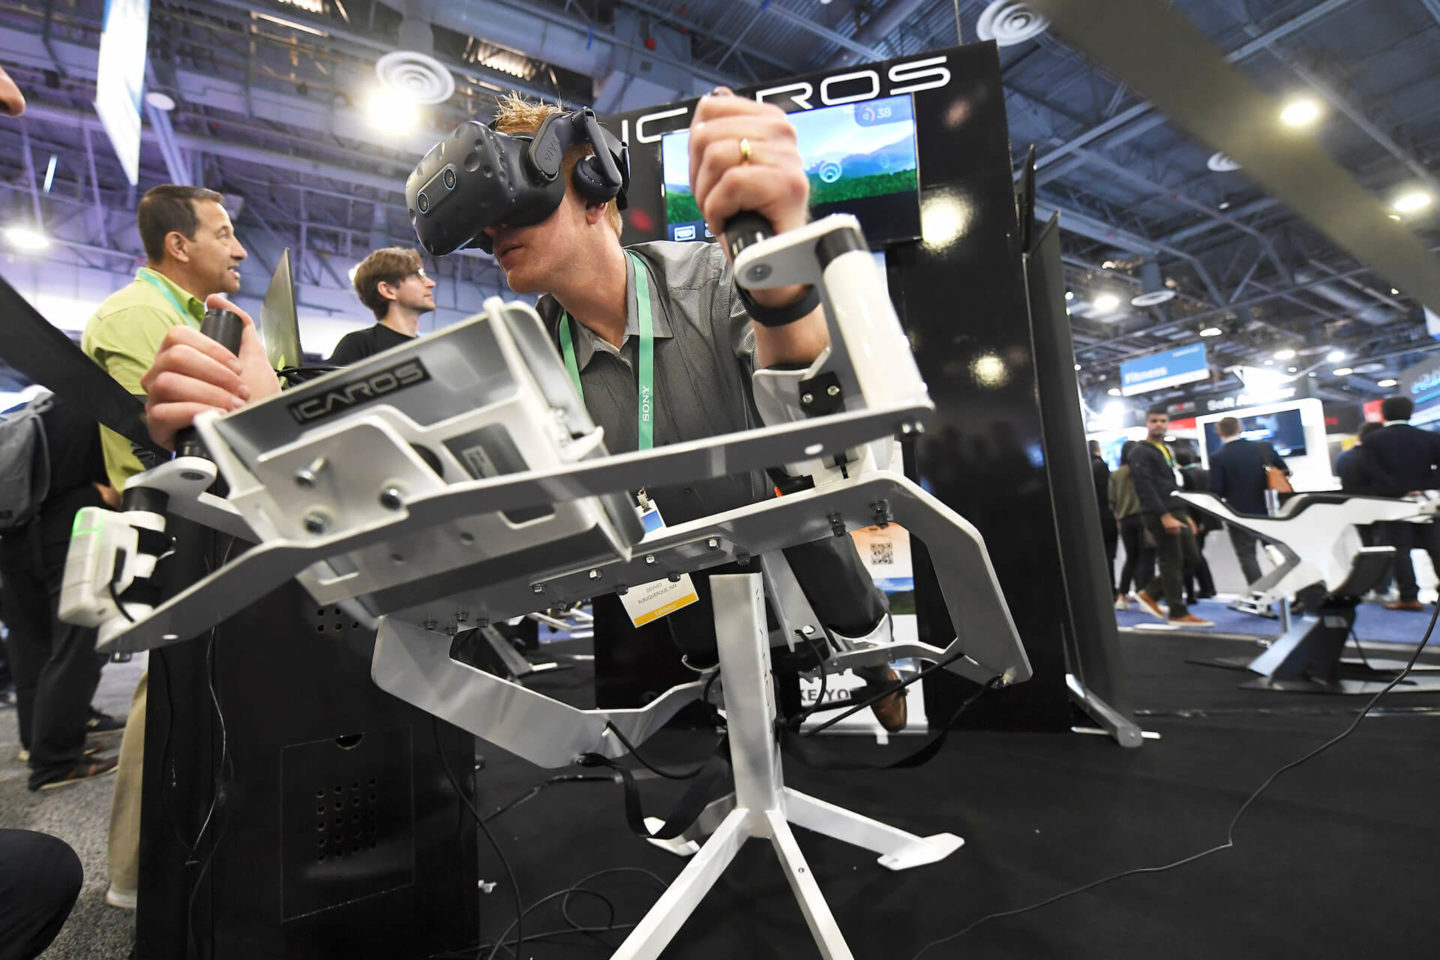 CES Digital fitness